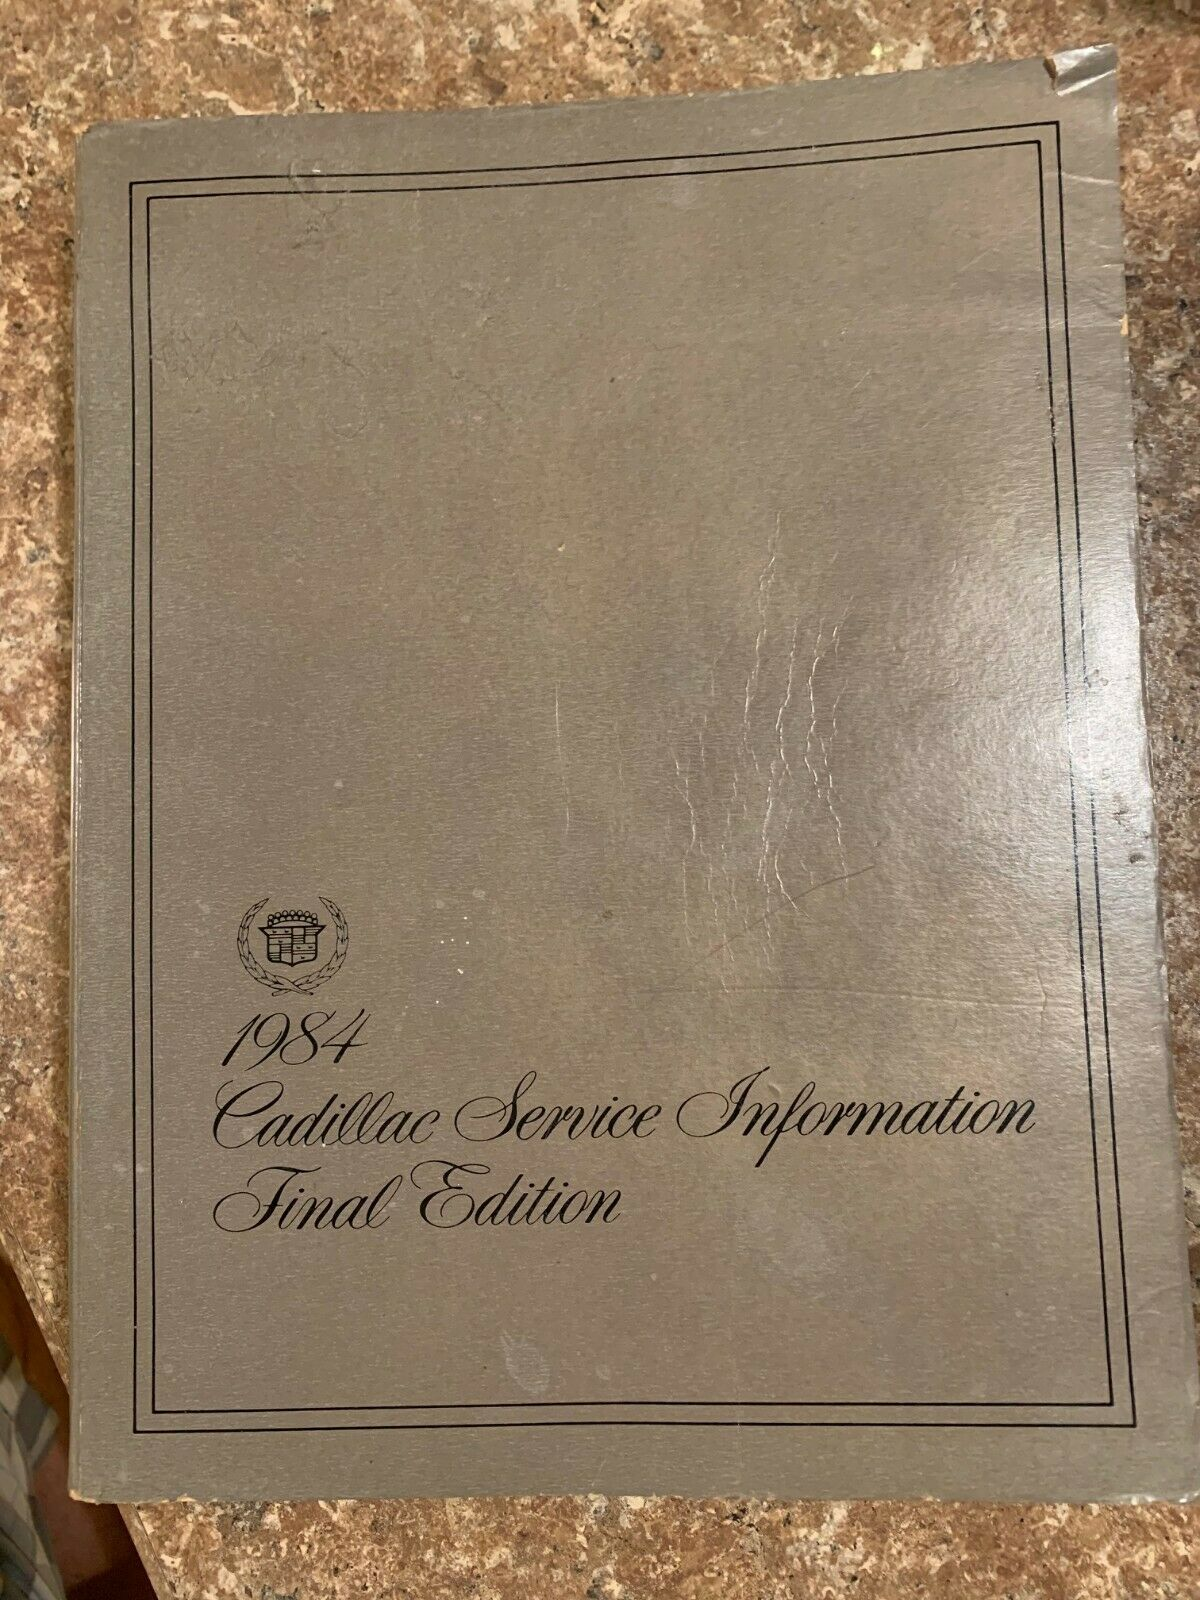 1984 CADILLAC FACTORY SERVICE MANUAL FINAL EDITION catalog H-2112 ex cond